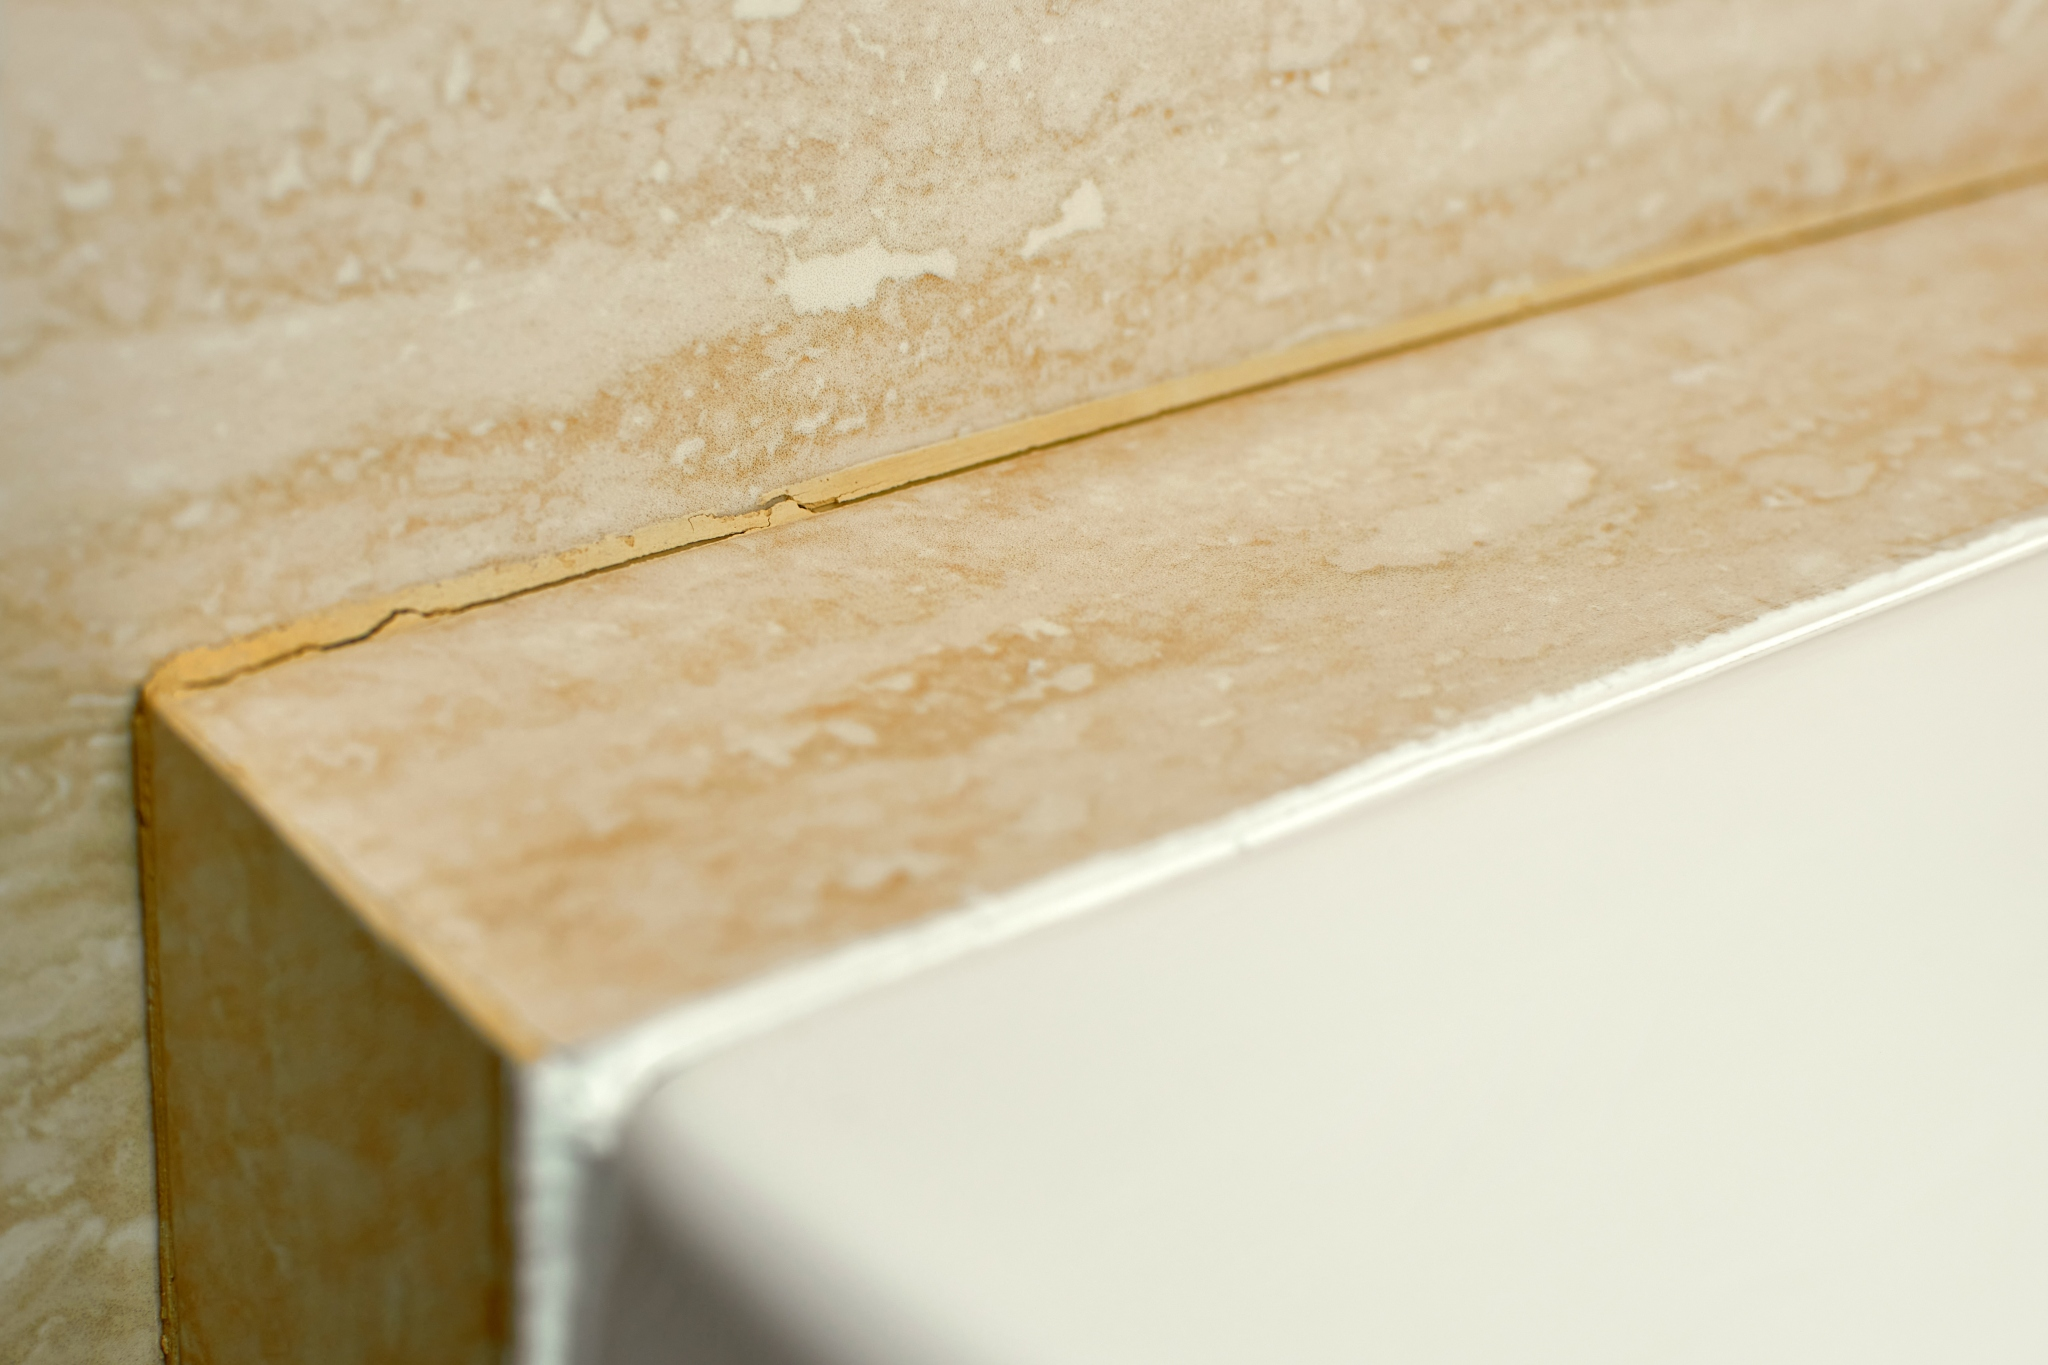 How long should grout last before cracking? Cracked grout along a countertop.